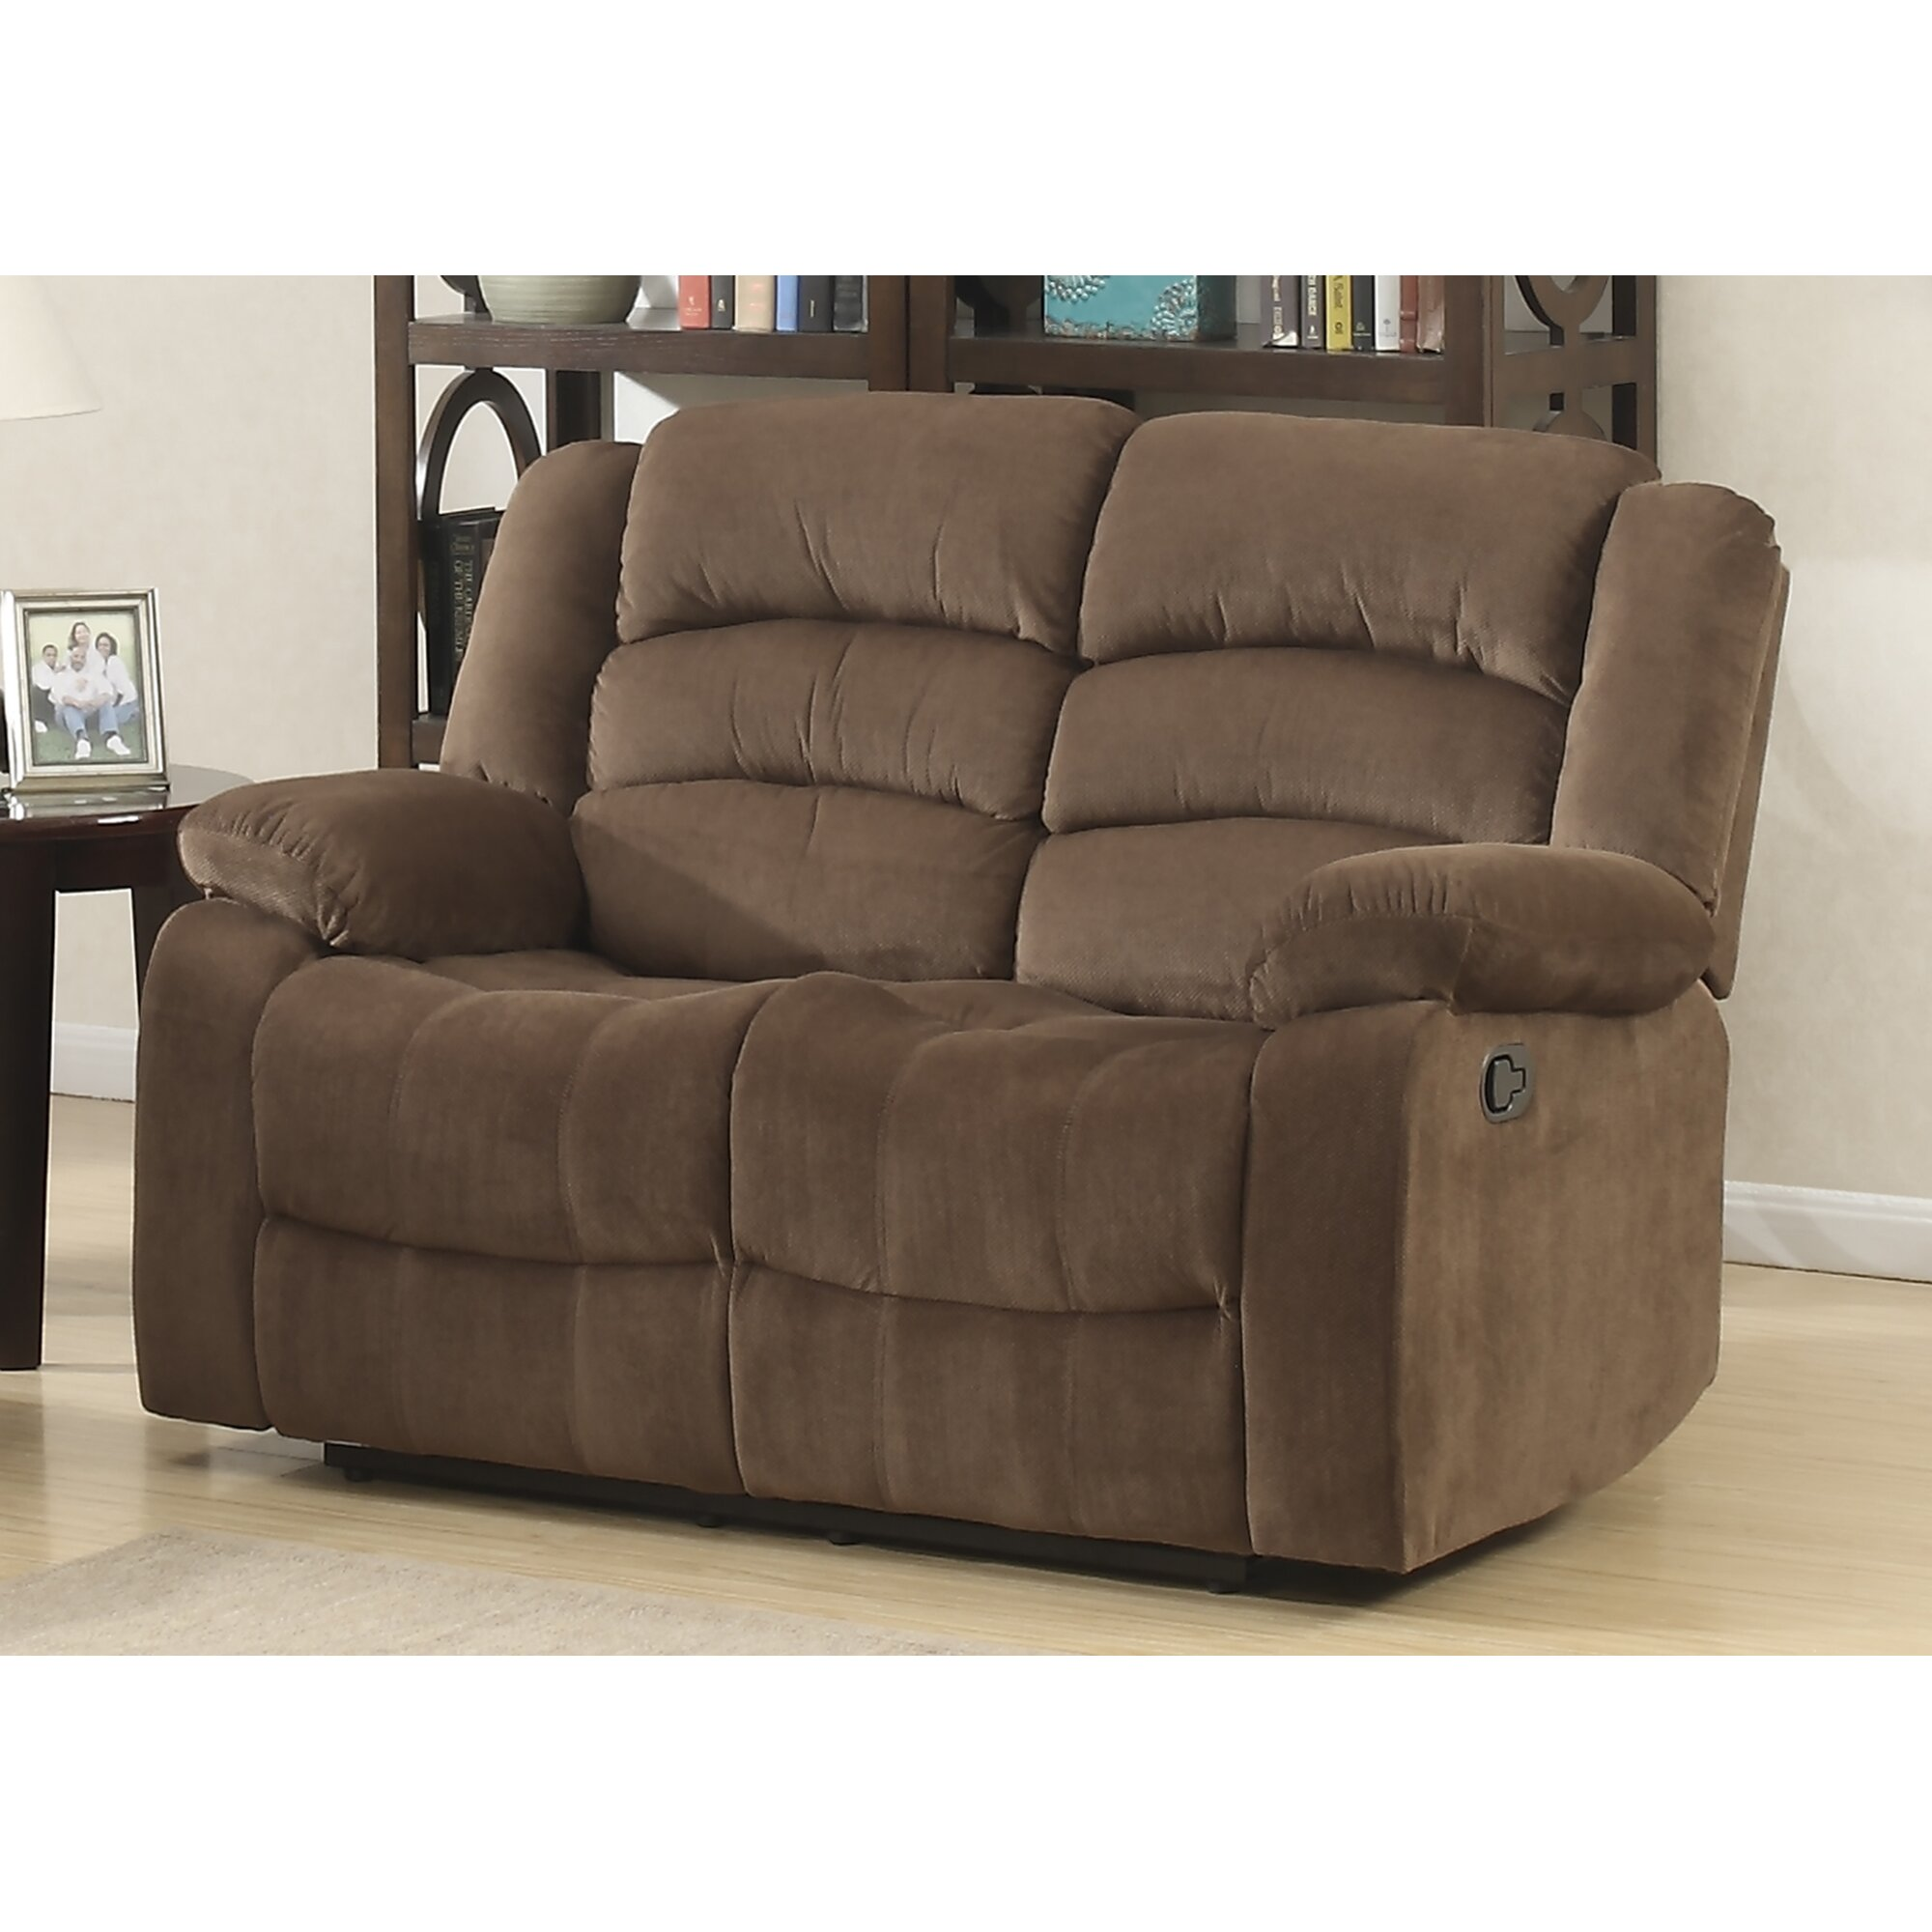 Ac pacific bill living room reclining loveseat reviews for Loveseat for kids room